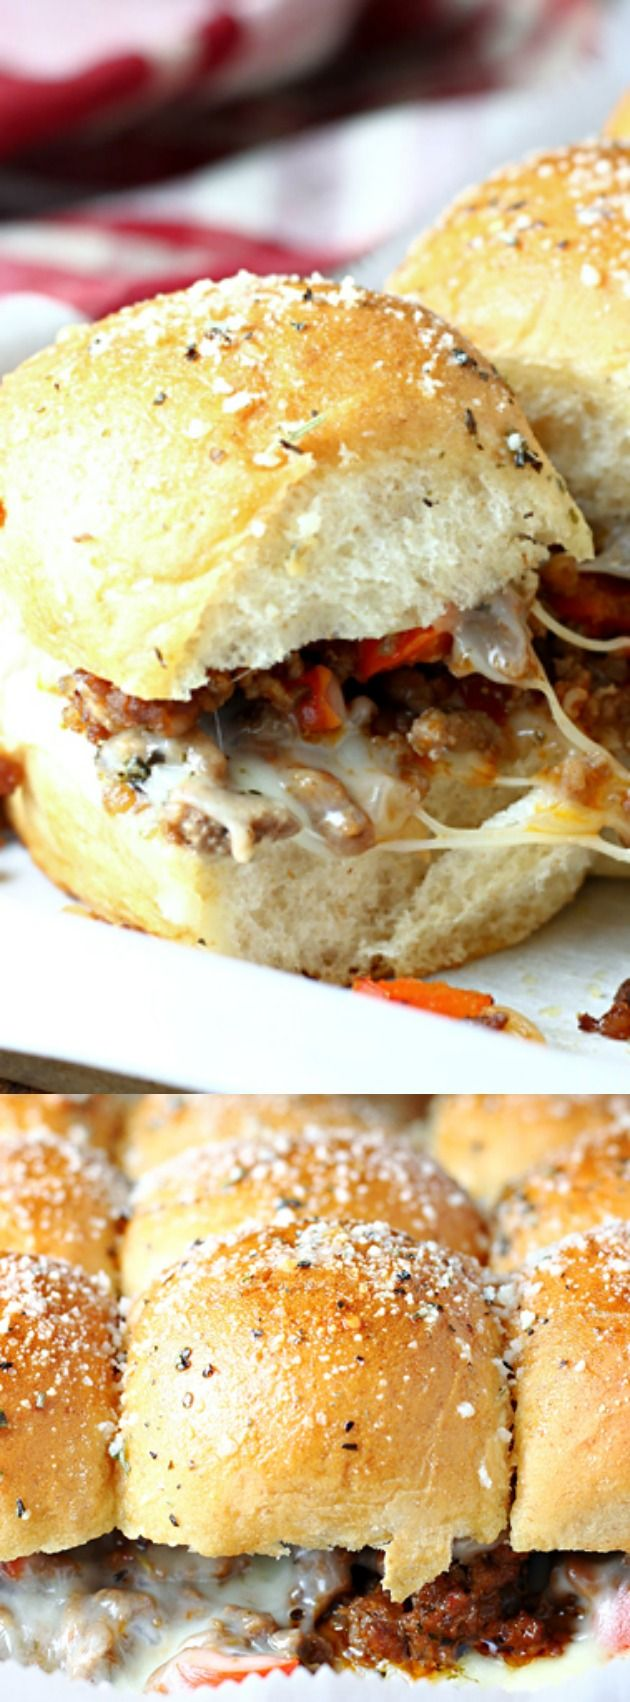 These Cheesy Sausage Pizza Sliders from Let's Dish are sure to be a hit whenever you serve them. They are filled with perfectly seasoned ground beef, Italian sausage, and lots of cheese!